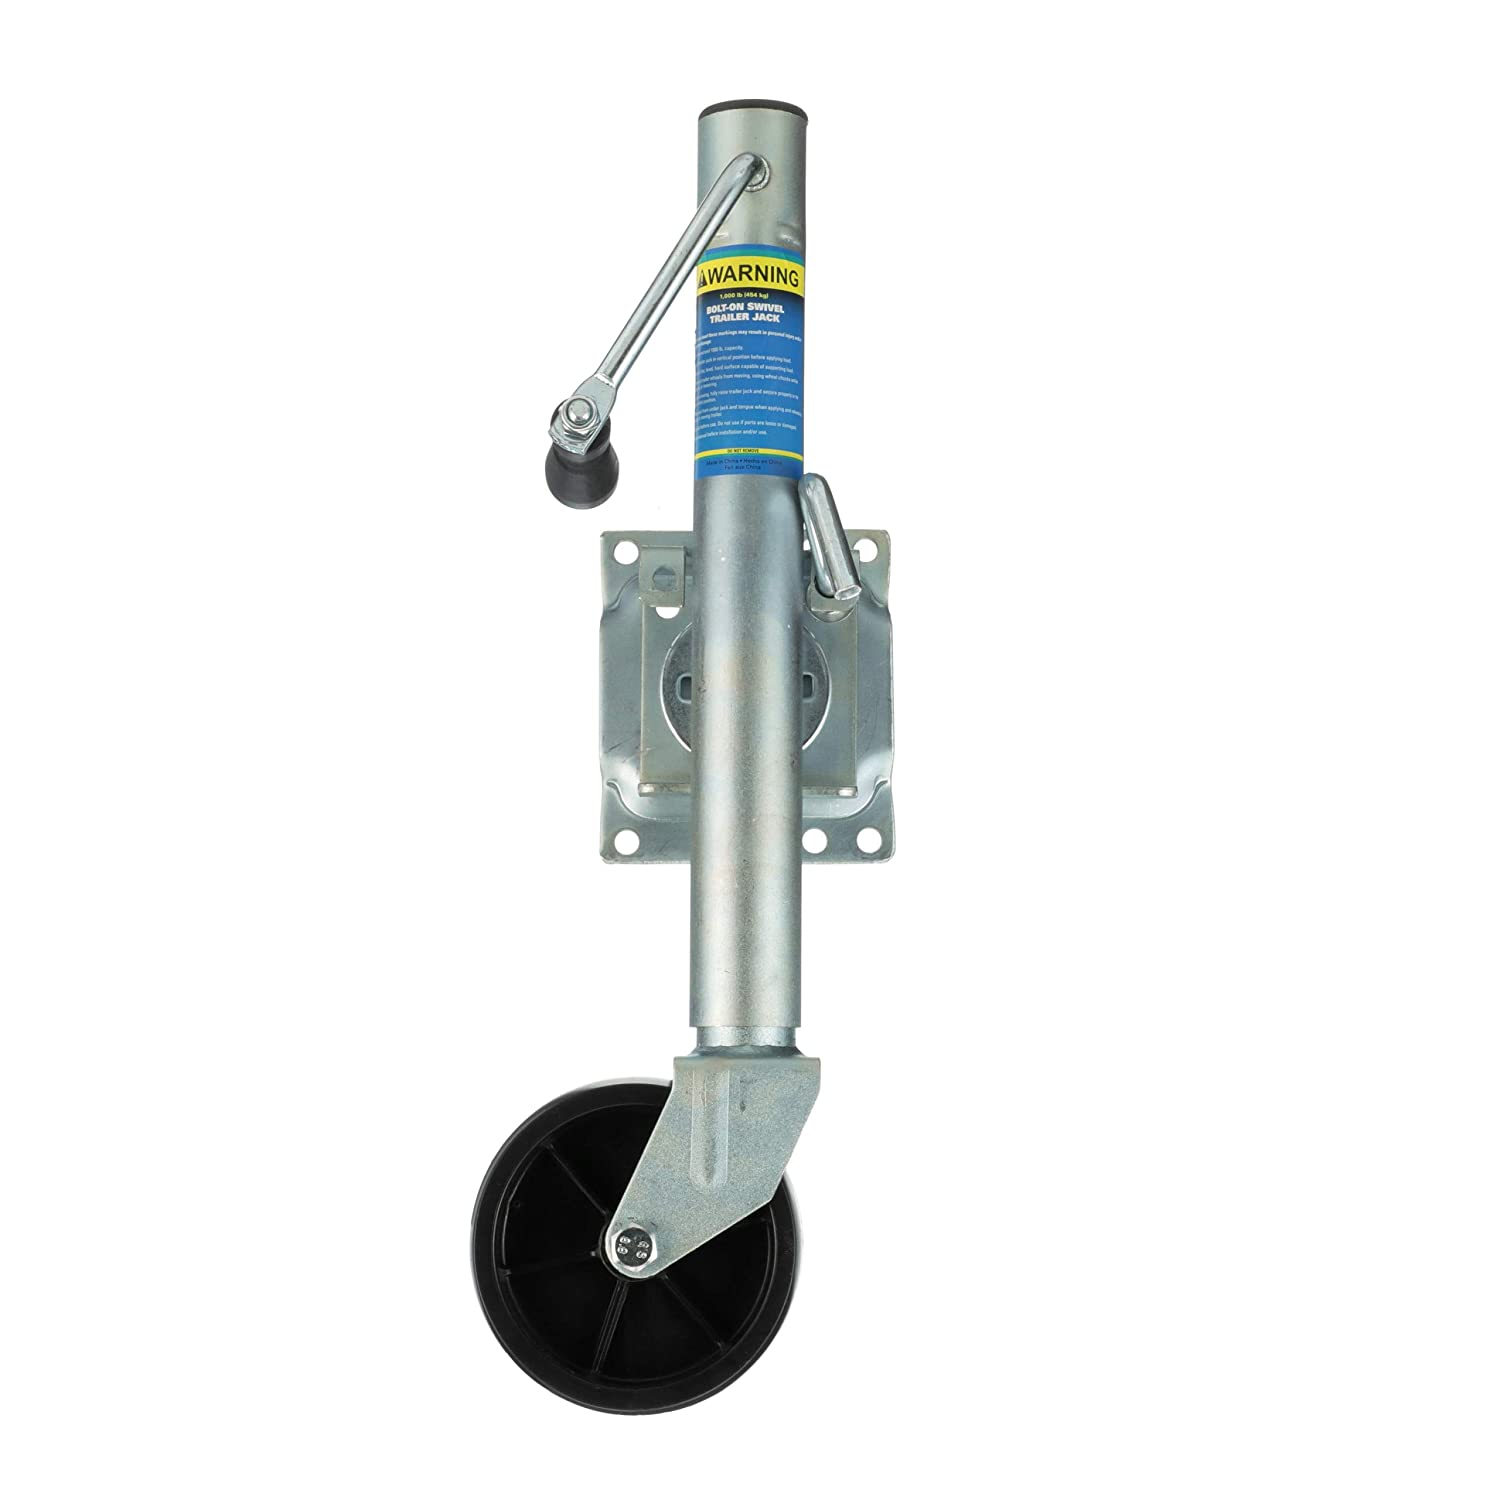 SEACHOICE Fold Up Trailer Jack 1, 000 Lbs. 52021 Fold Up Trailer Jack 1, 000 Lbs Land N Sea Distributing